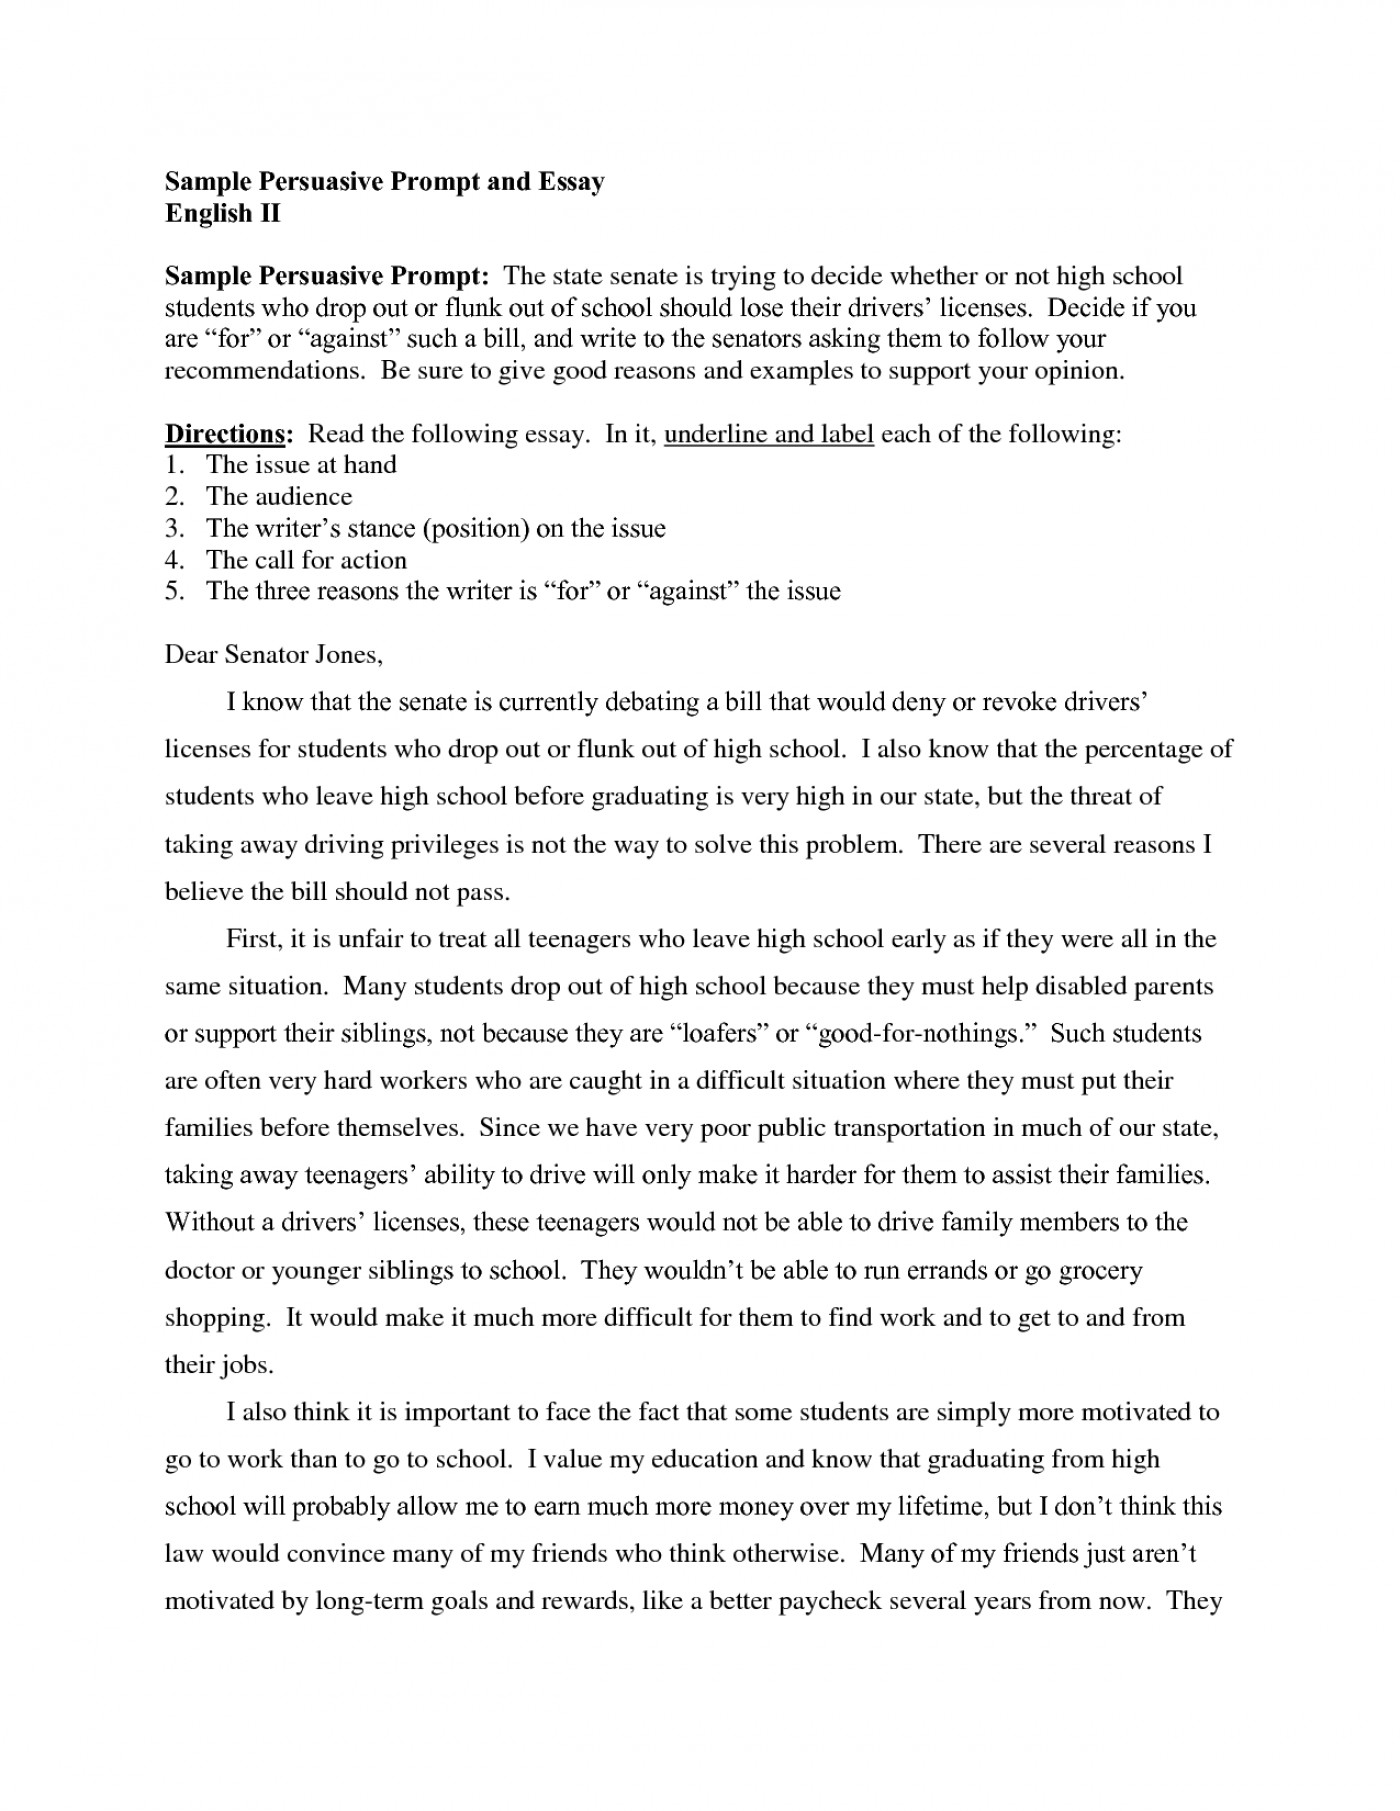 013 Research Paper Easy Topic Persuasive Essay Topics For High School Sample Ideas Highschool Students Good Prompt Funny Fun List Of Seniors Writing English Sensational Psychology History 1400